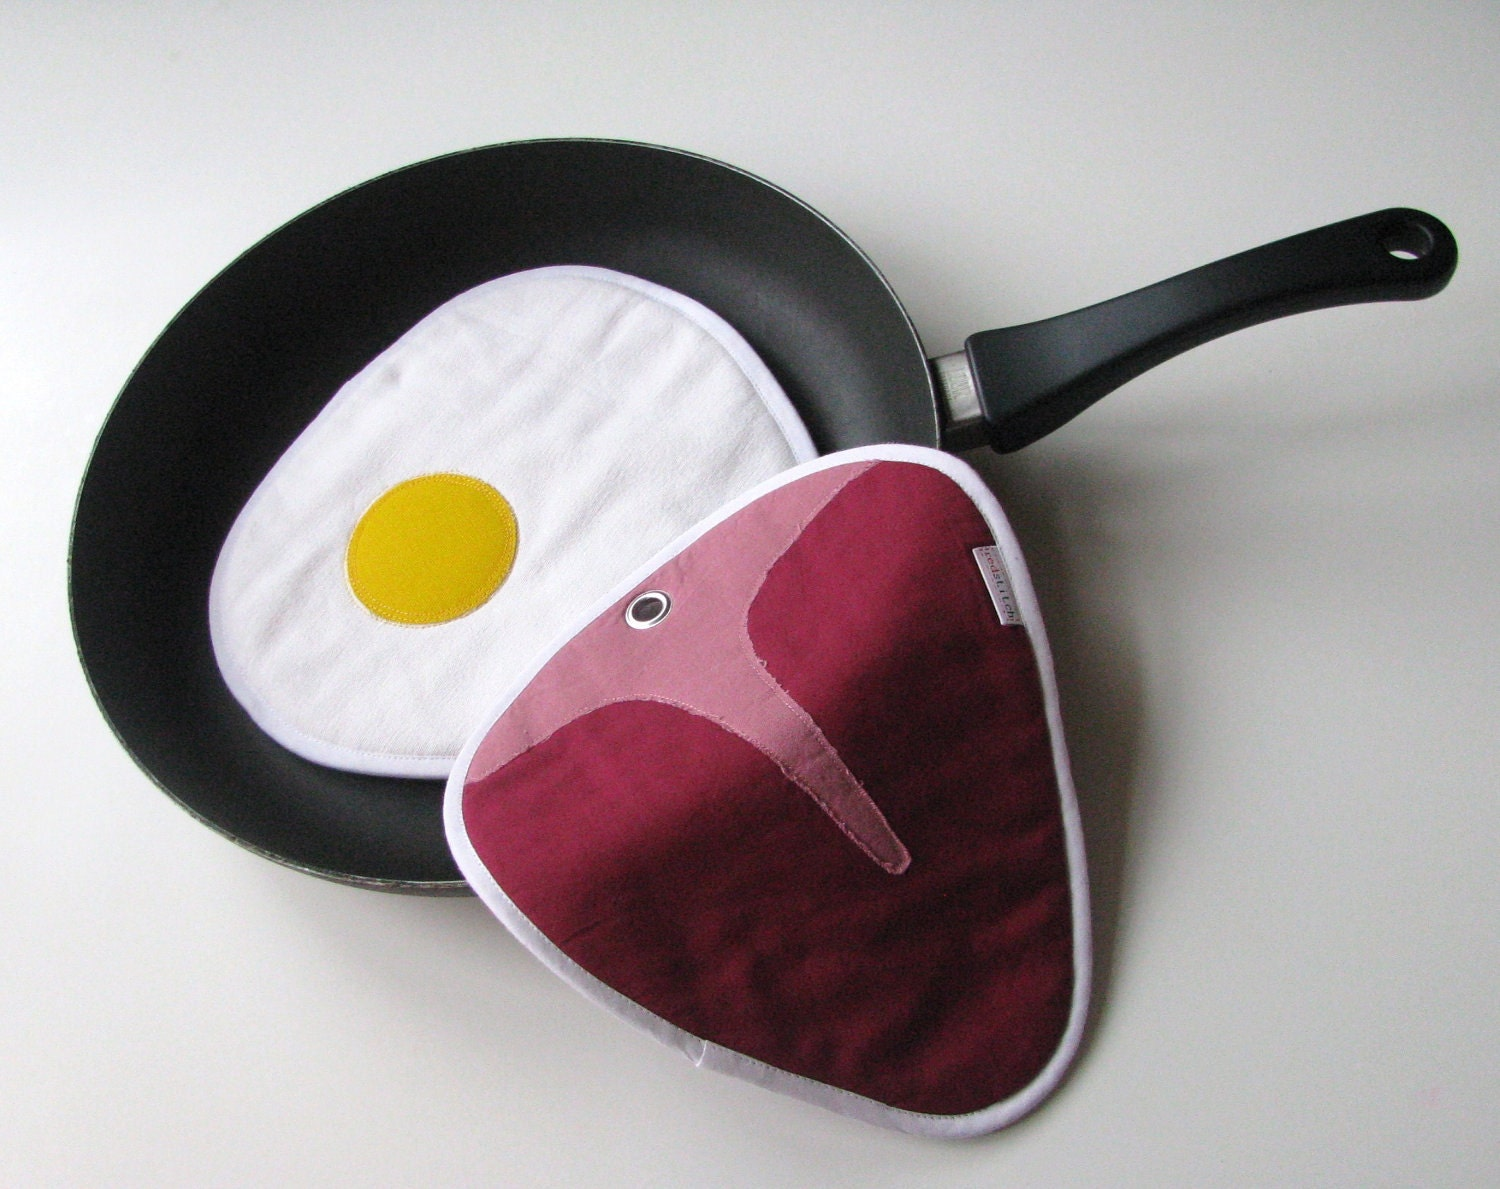 juicy steak and fried eggs potholders - fun potholders - kitchen potholders - made to order